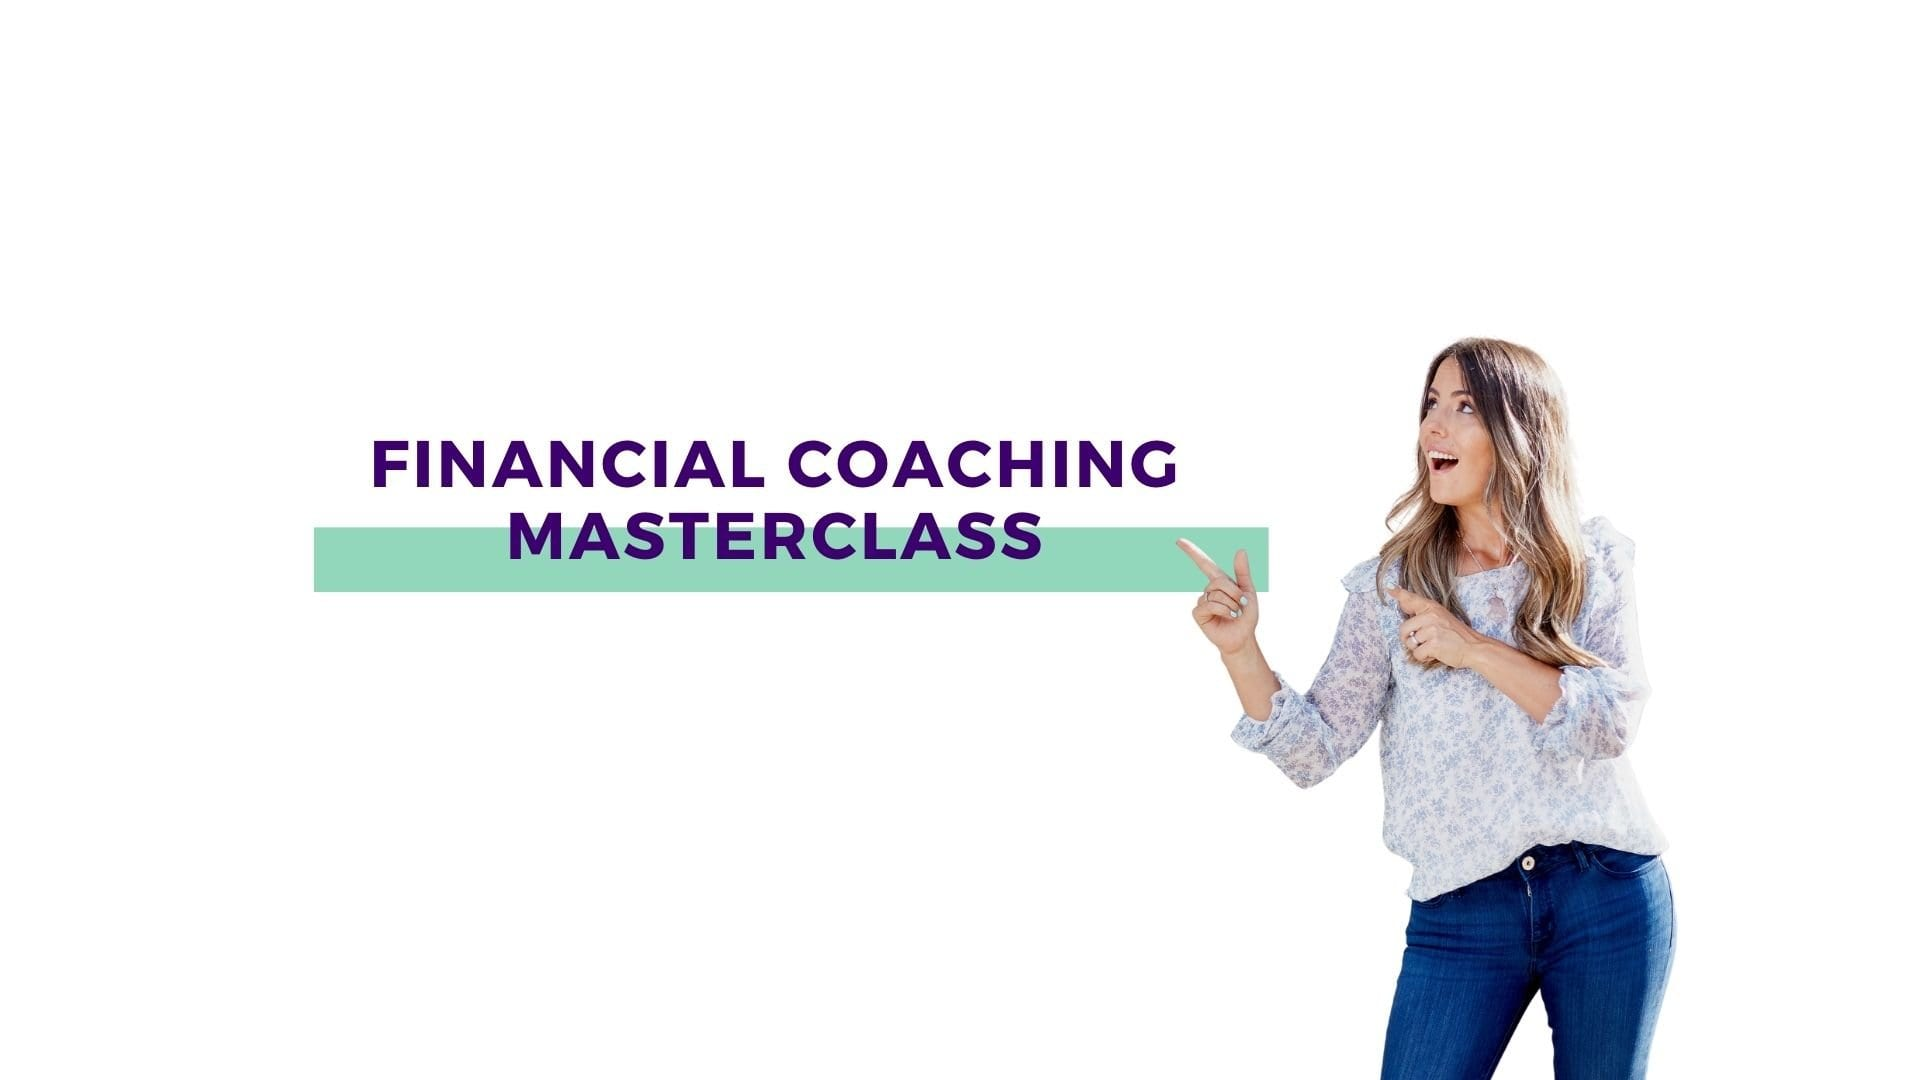 FCT Masterclass Featured Image